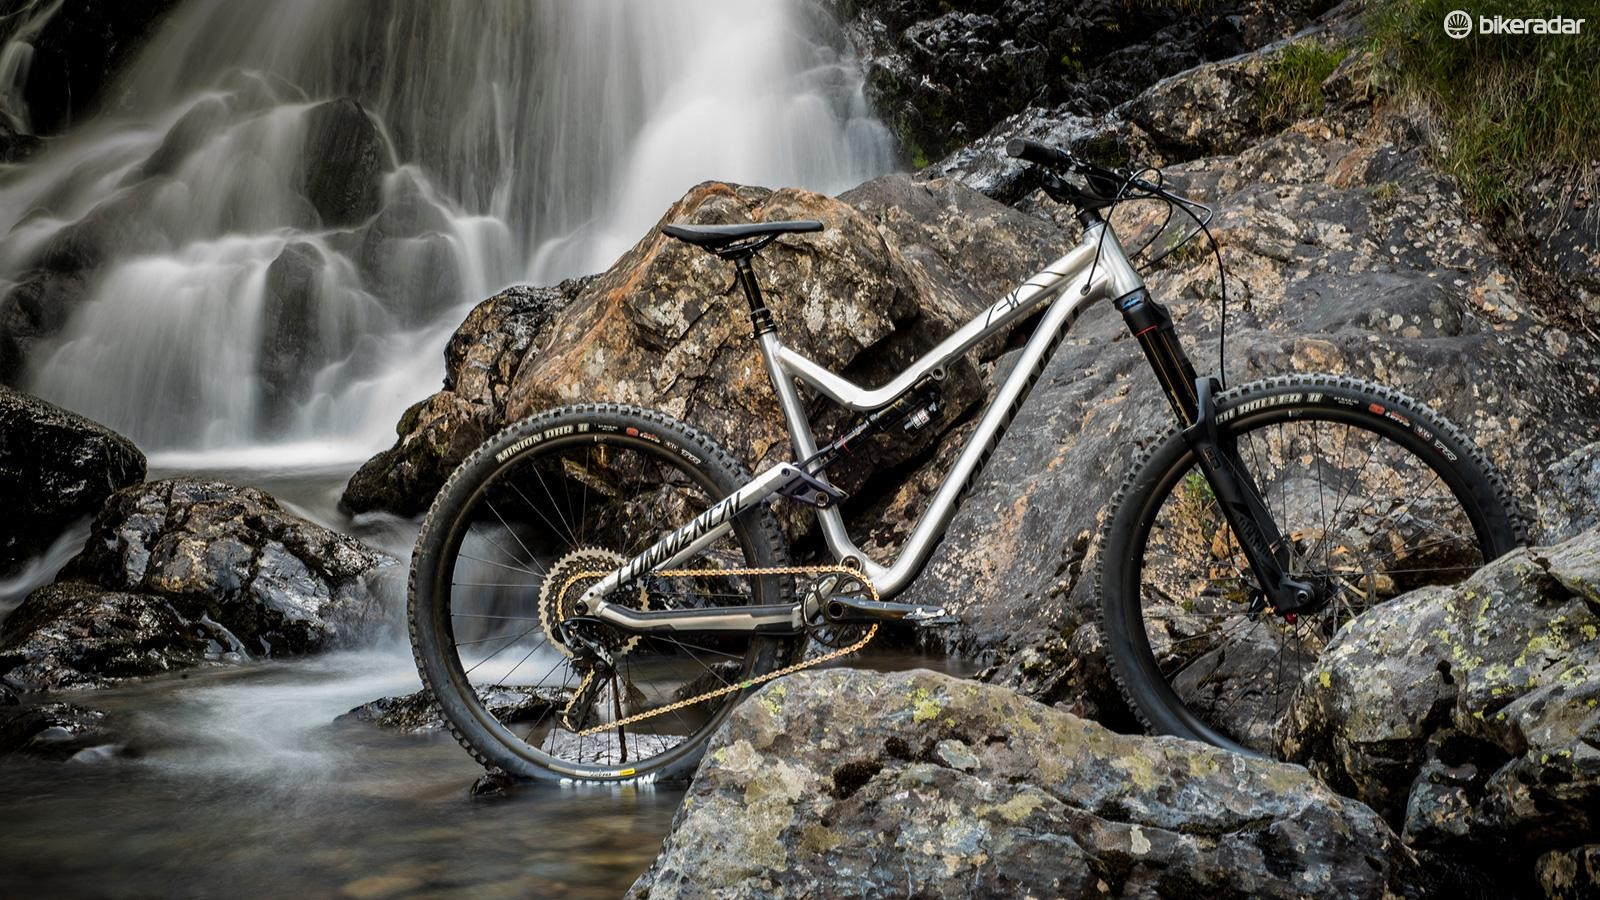 The new Meta AM V.2 redefines a classic enduro bike